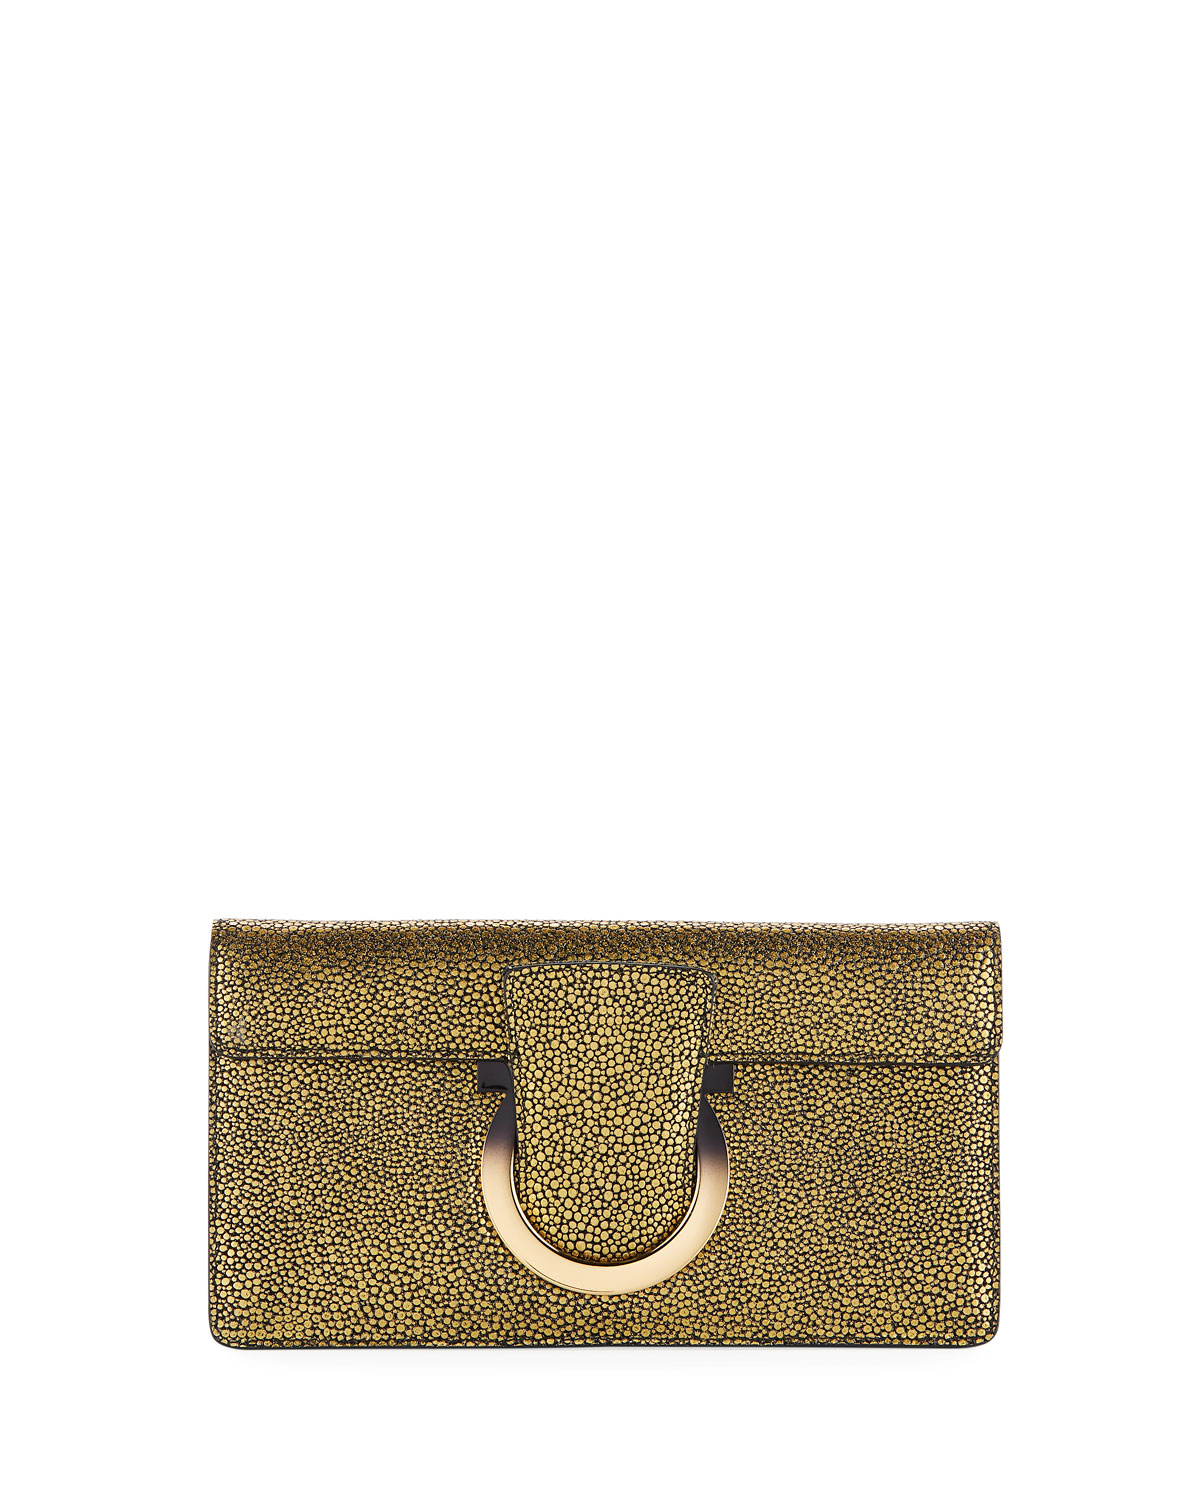 THALIA SMALL SPECKLED SUEDE COCKTAIL CLUTCH BAG from Neiman Marcus